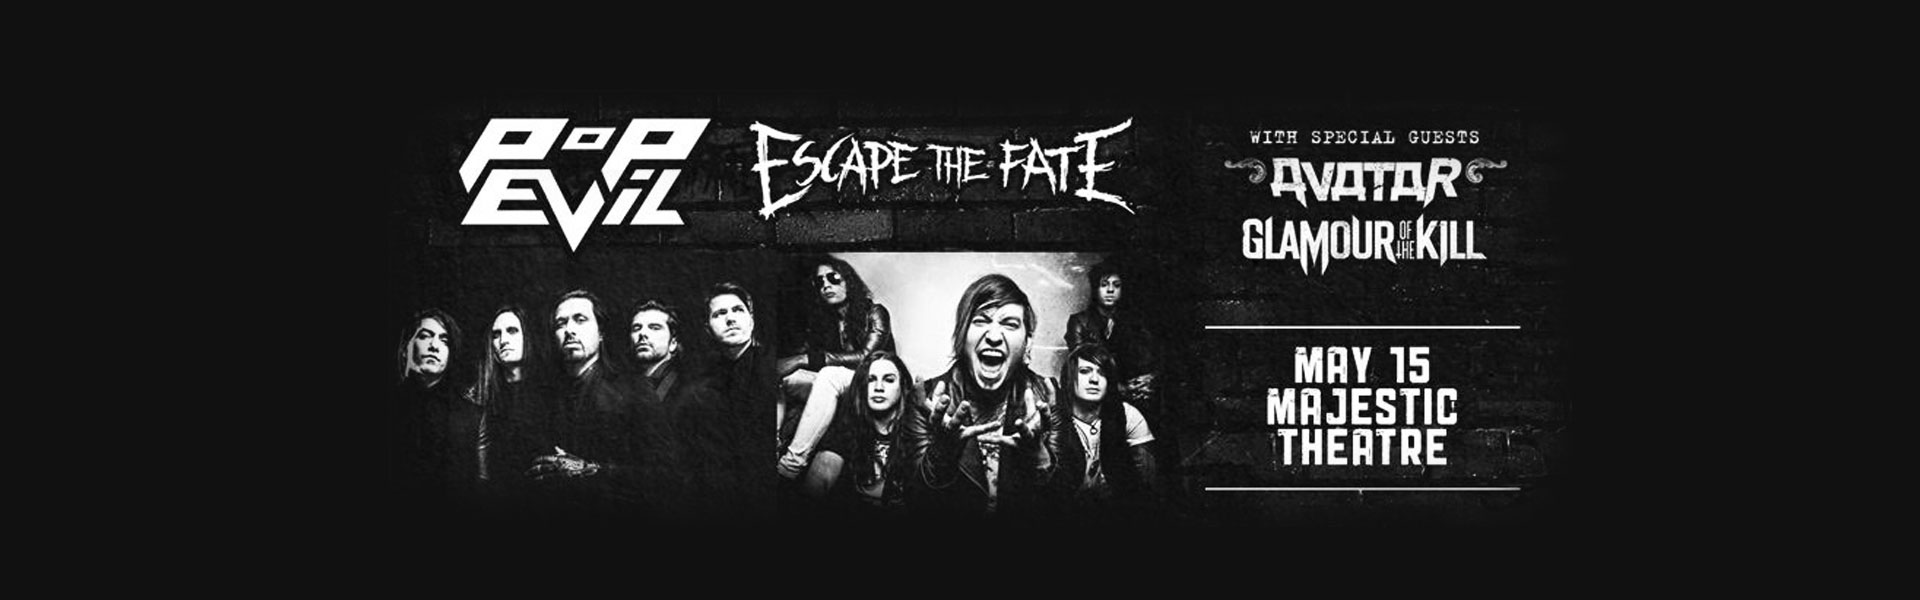 pop-evil-escape-the-fate